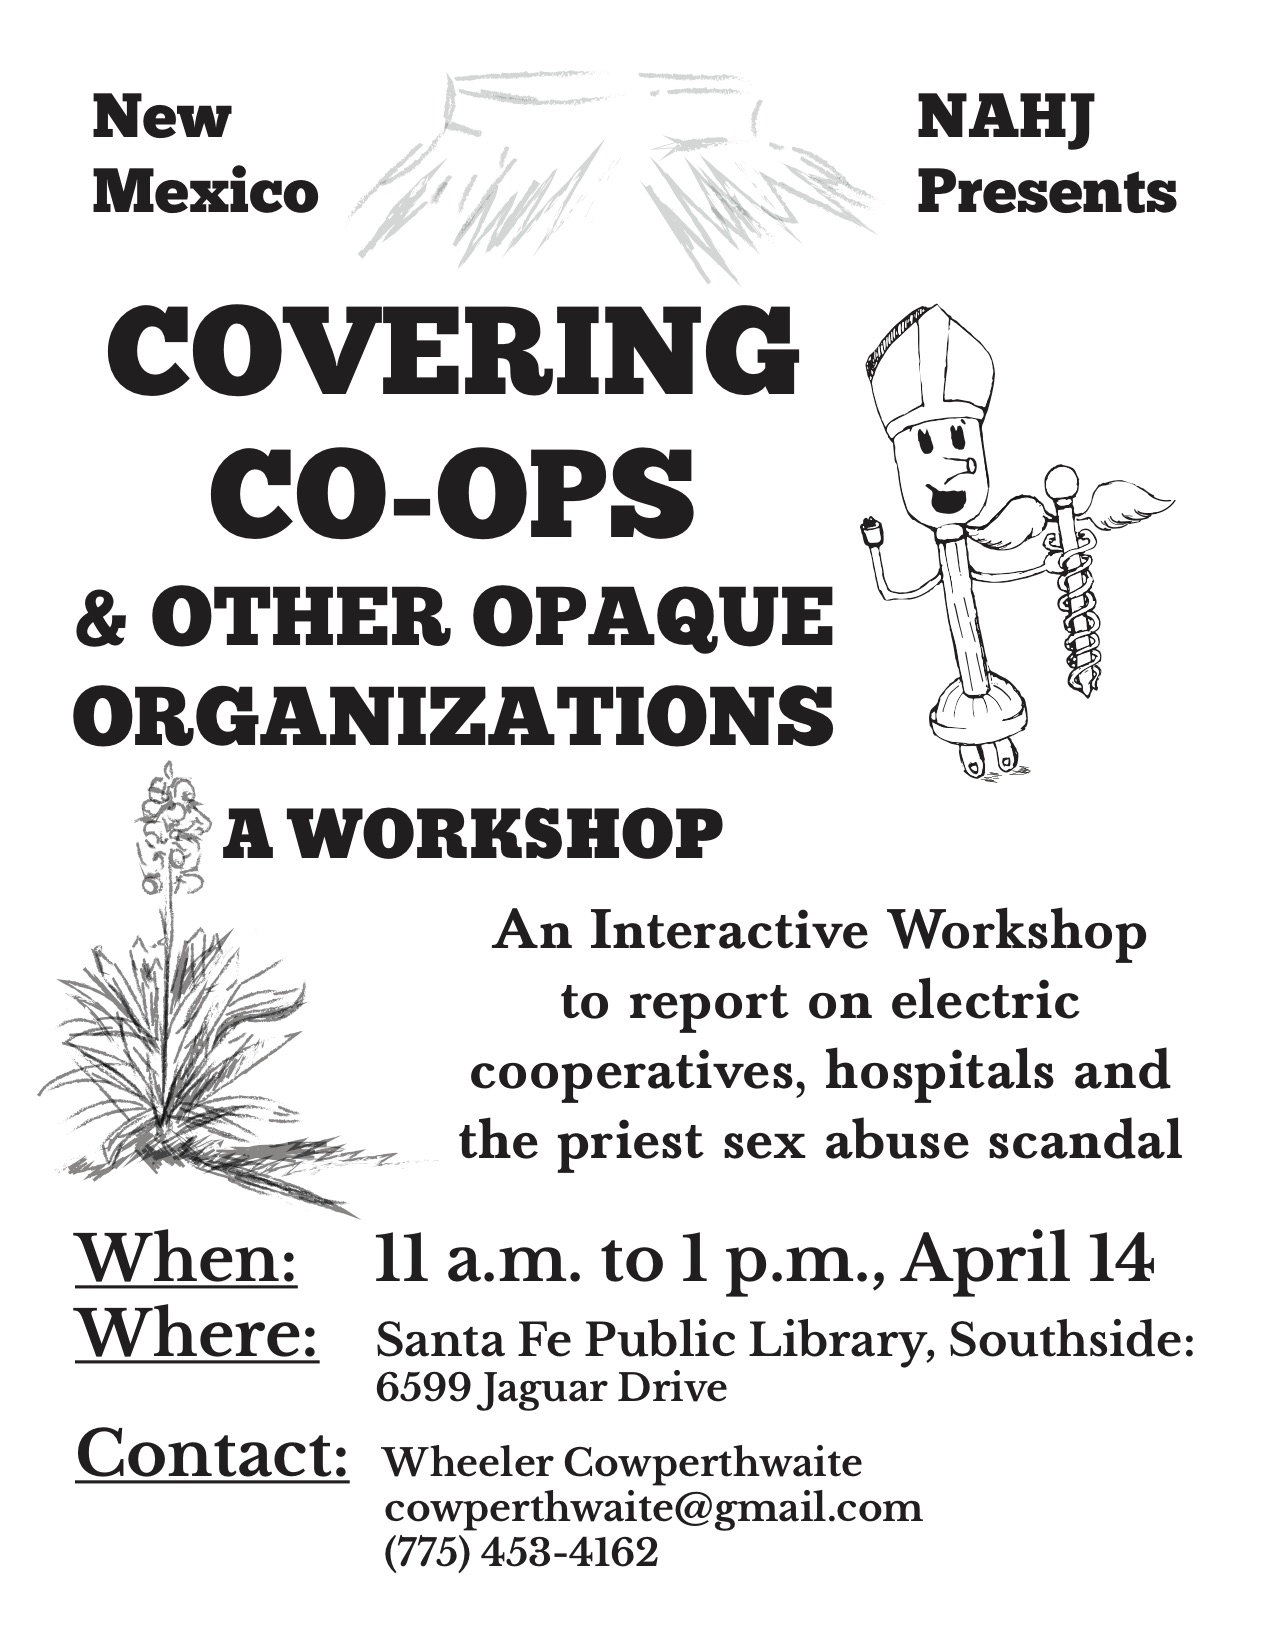 WORKSHOP: Covering Co-OPS & Other Opaque Organizations